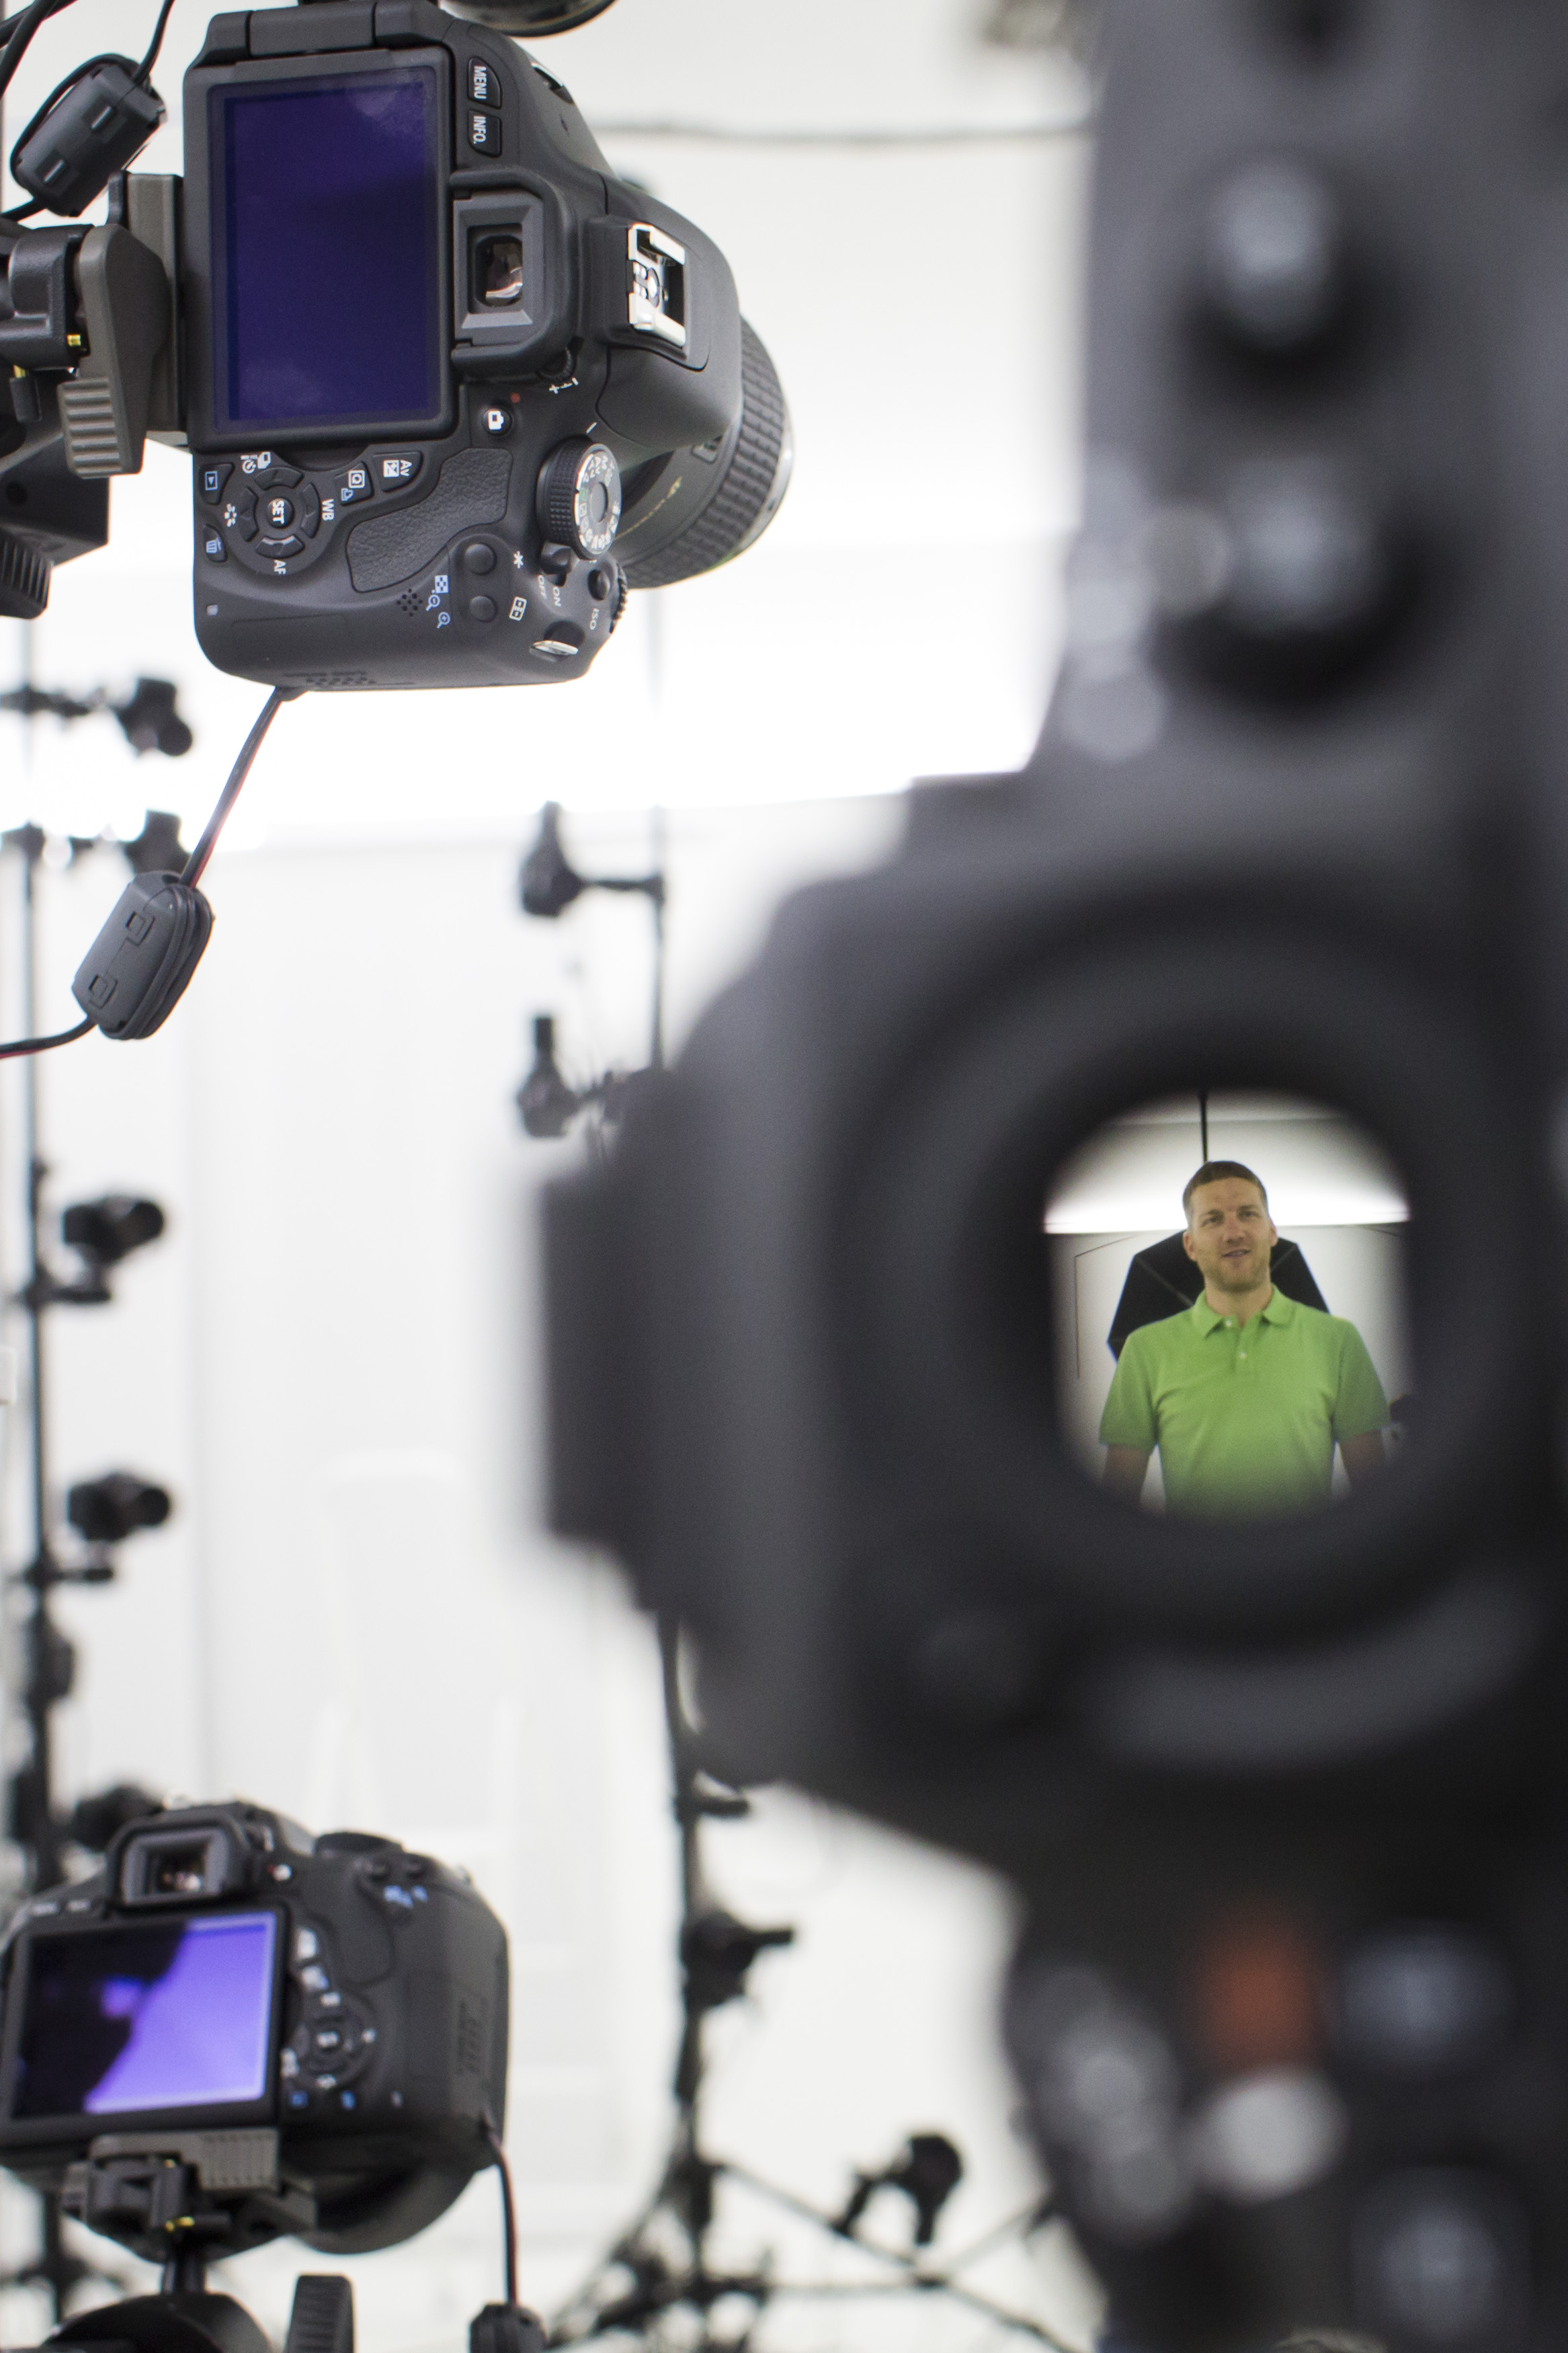 Martin Benes from 3D gang company is seen through the viewfinder as he demonstrates one of the stages of 3D scanning on August 26, 2014 in Prague, Czech Republic.